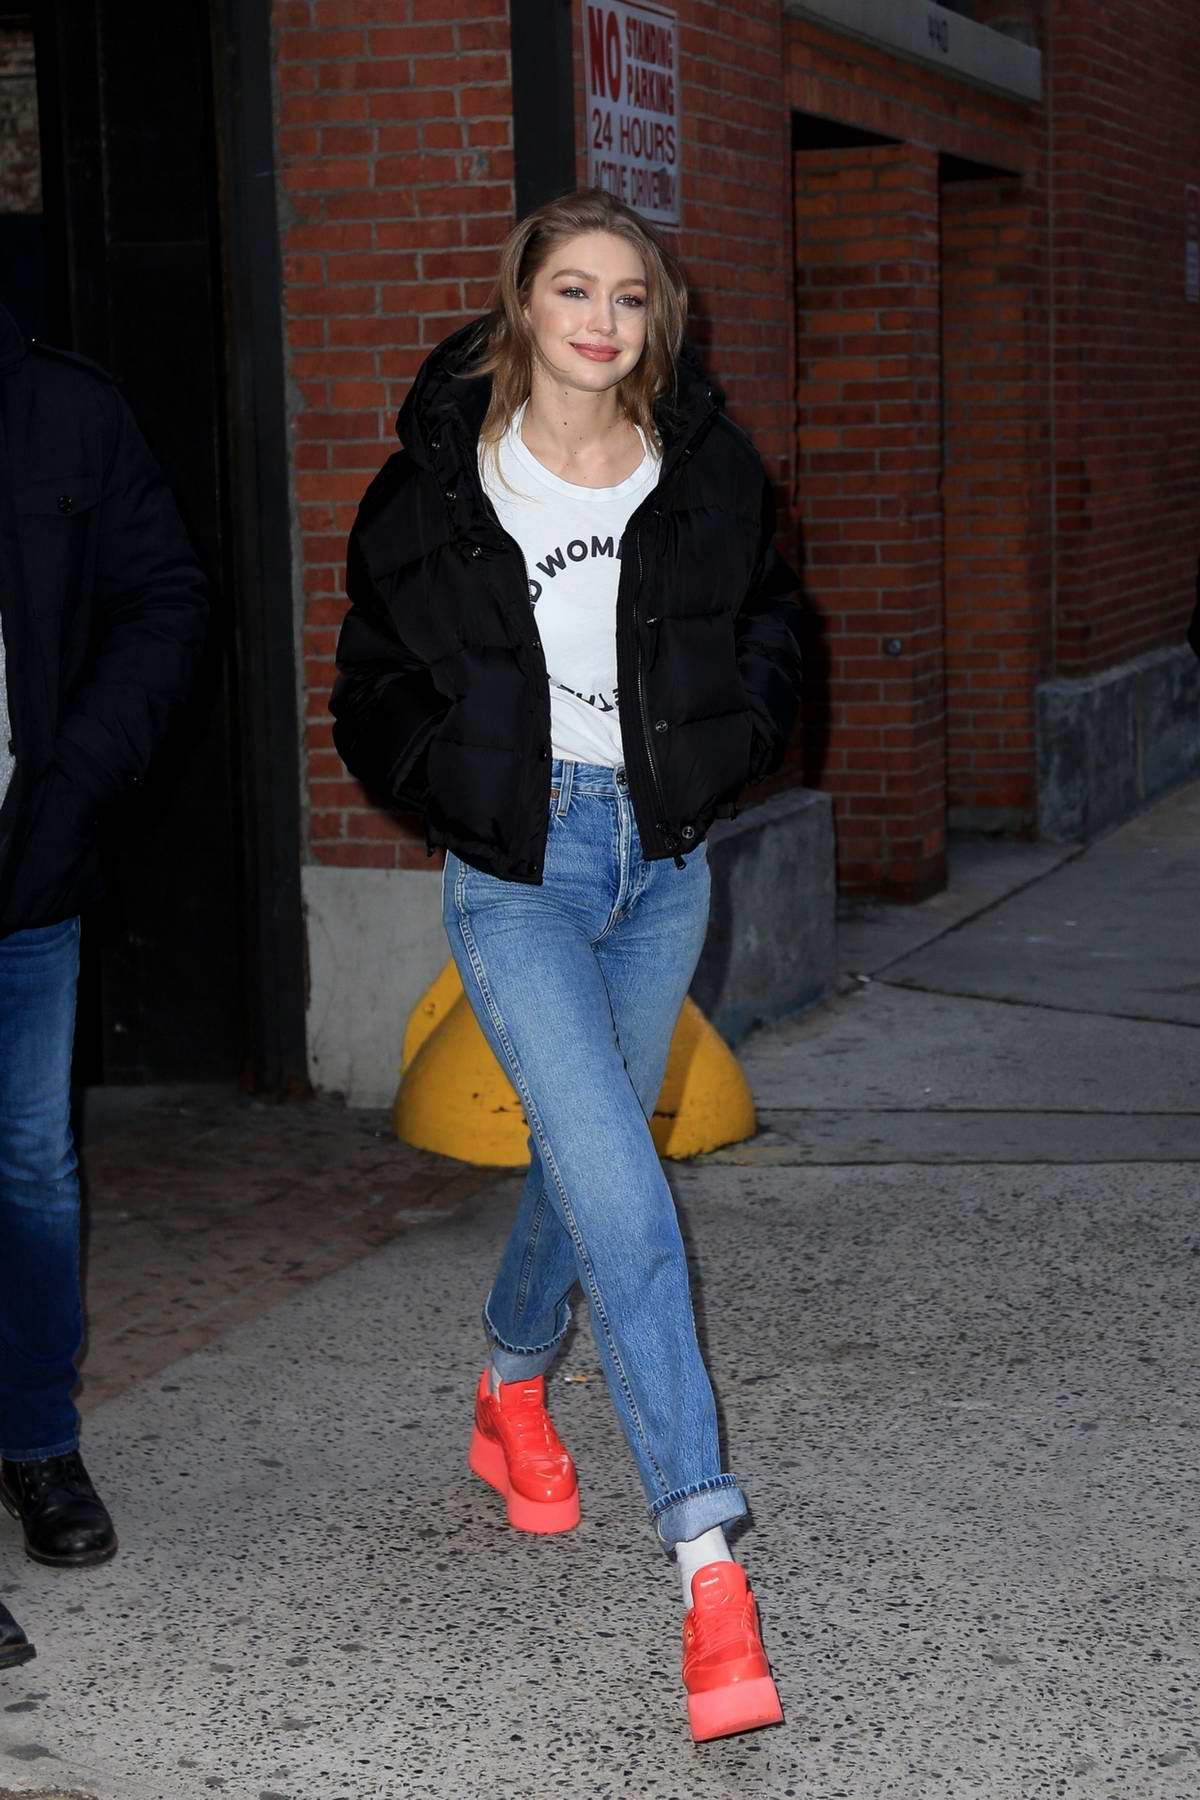 Gigi Hadid keeps it trendy with a parka, white tee, jeans and red sneakers as she leaves a studio after a Maybelline photoshoot in New York City